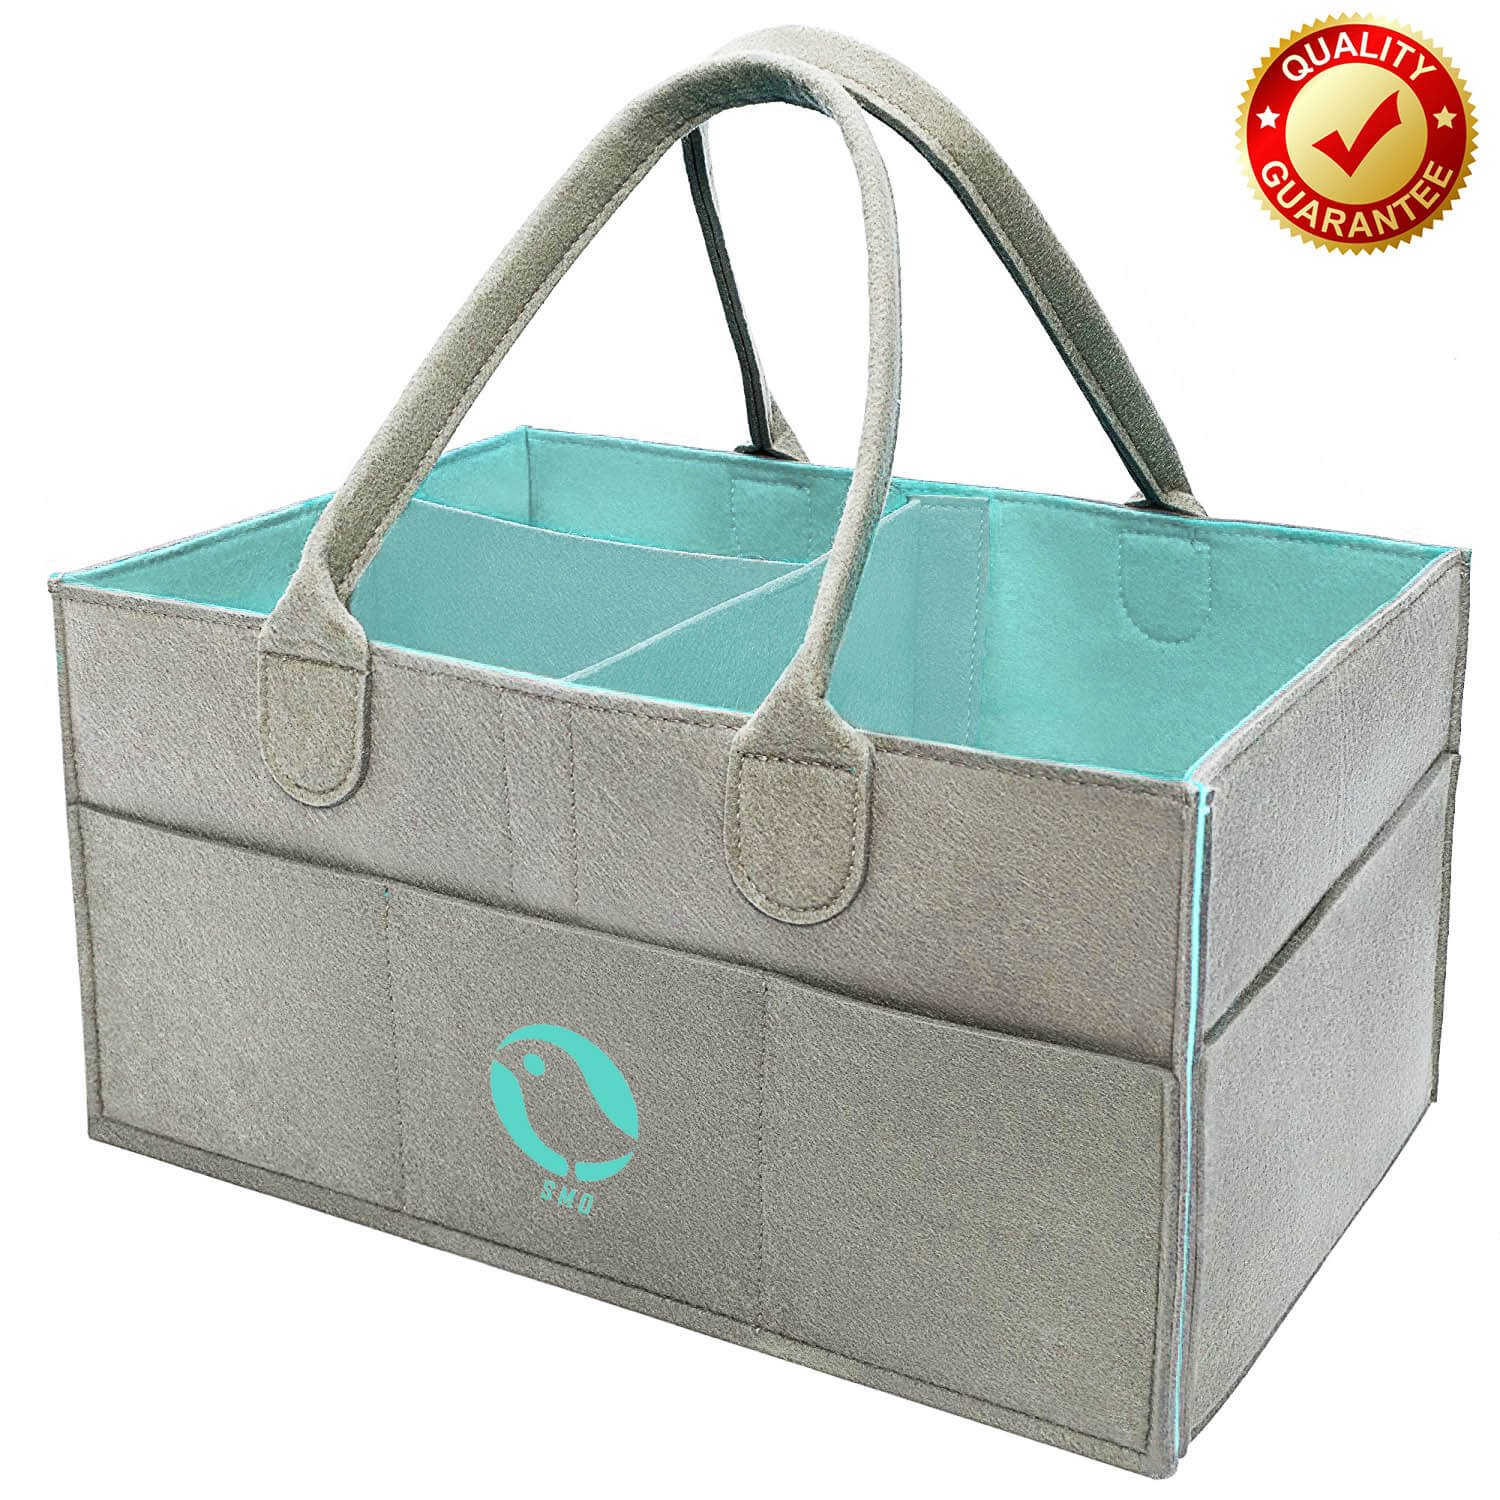 Baby Diaper Caddy Organizer - Nursery Storage Bin for Diapers,Baby Wipes, Kid Toys Bag  Large Portable Car Travel Organizer   Baby Shower Gift Basket